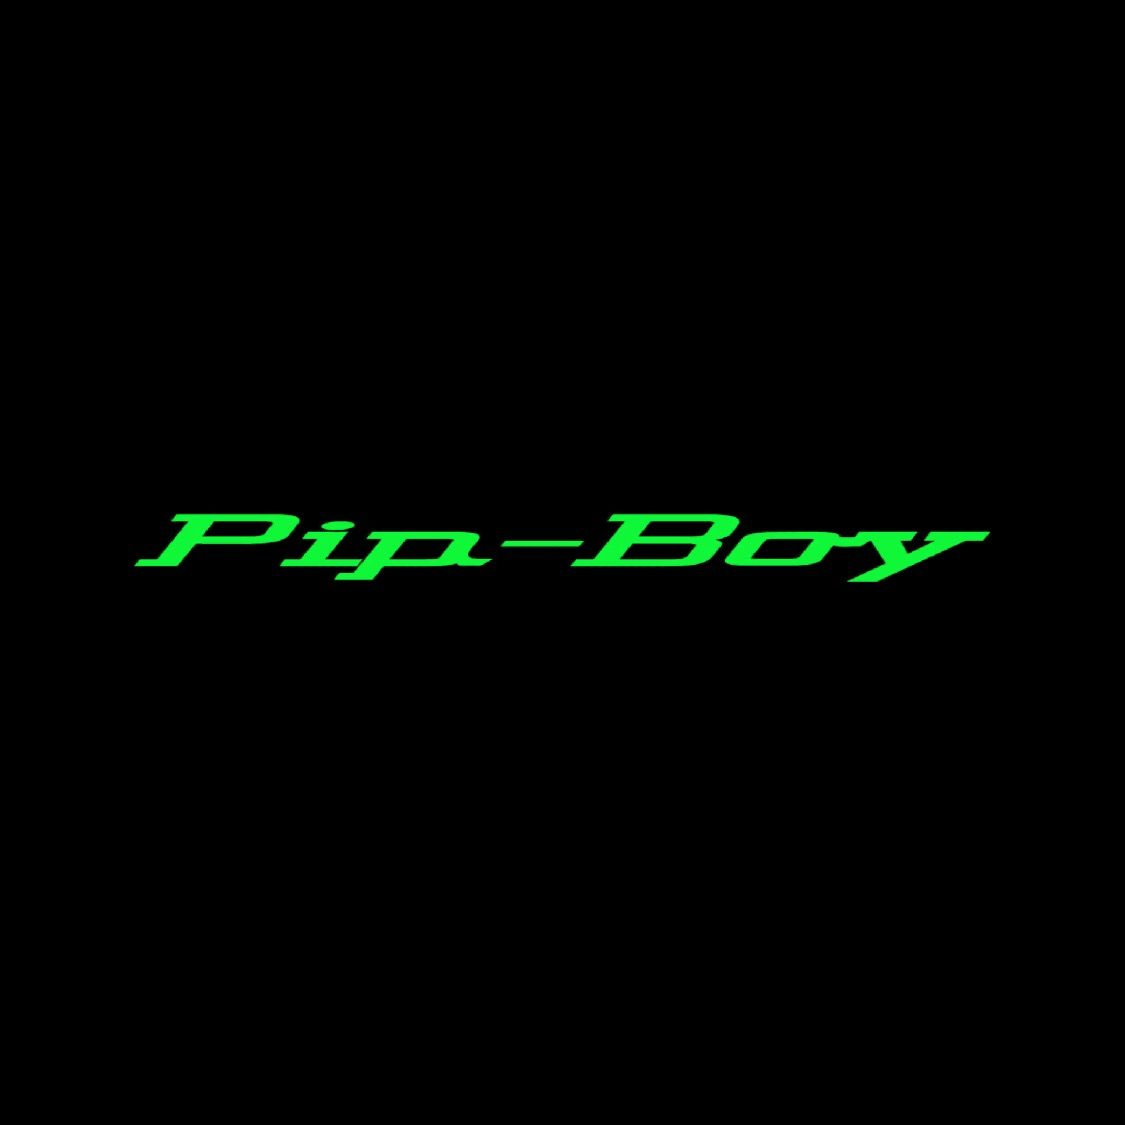 The Pipboy app is already out and it's amazing. pipboy